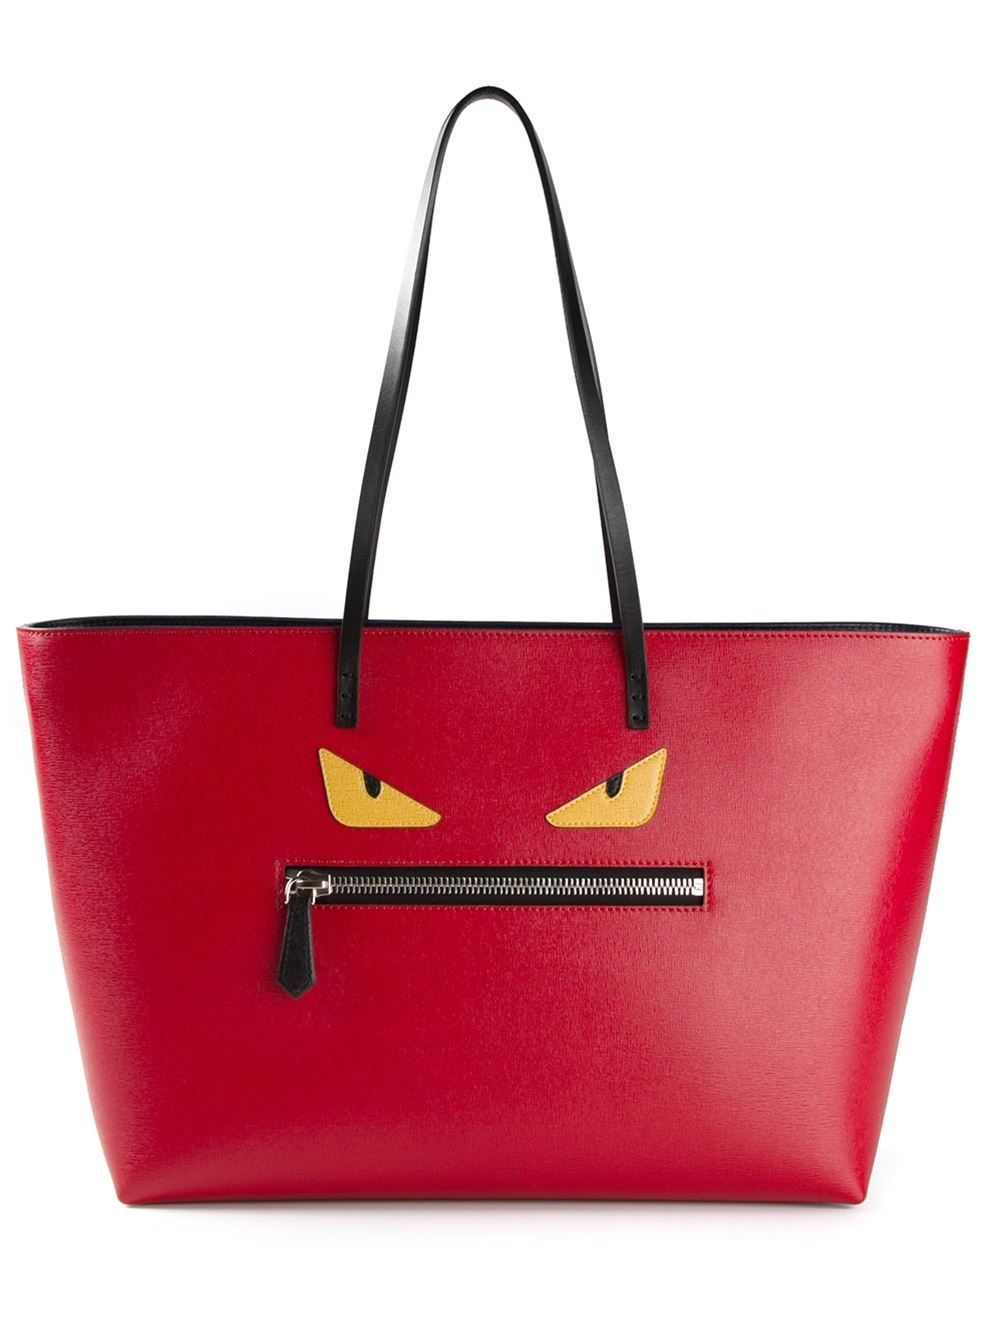 3c8eb56d7 #fendi #monster #bags #roll #red #tote #spring #womens #fashion www.jofre.eu